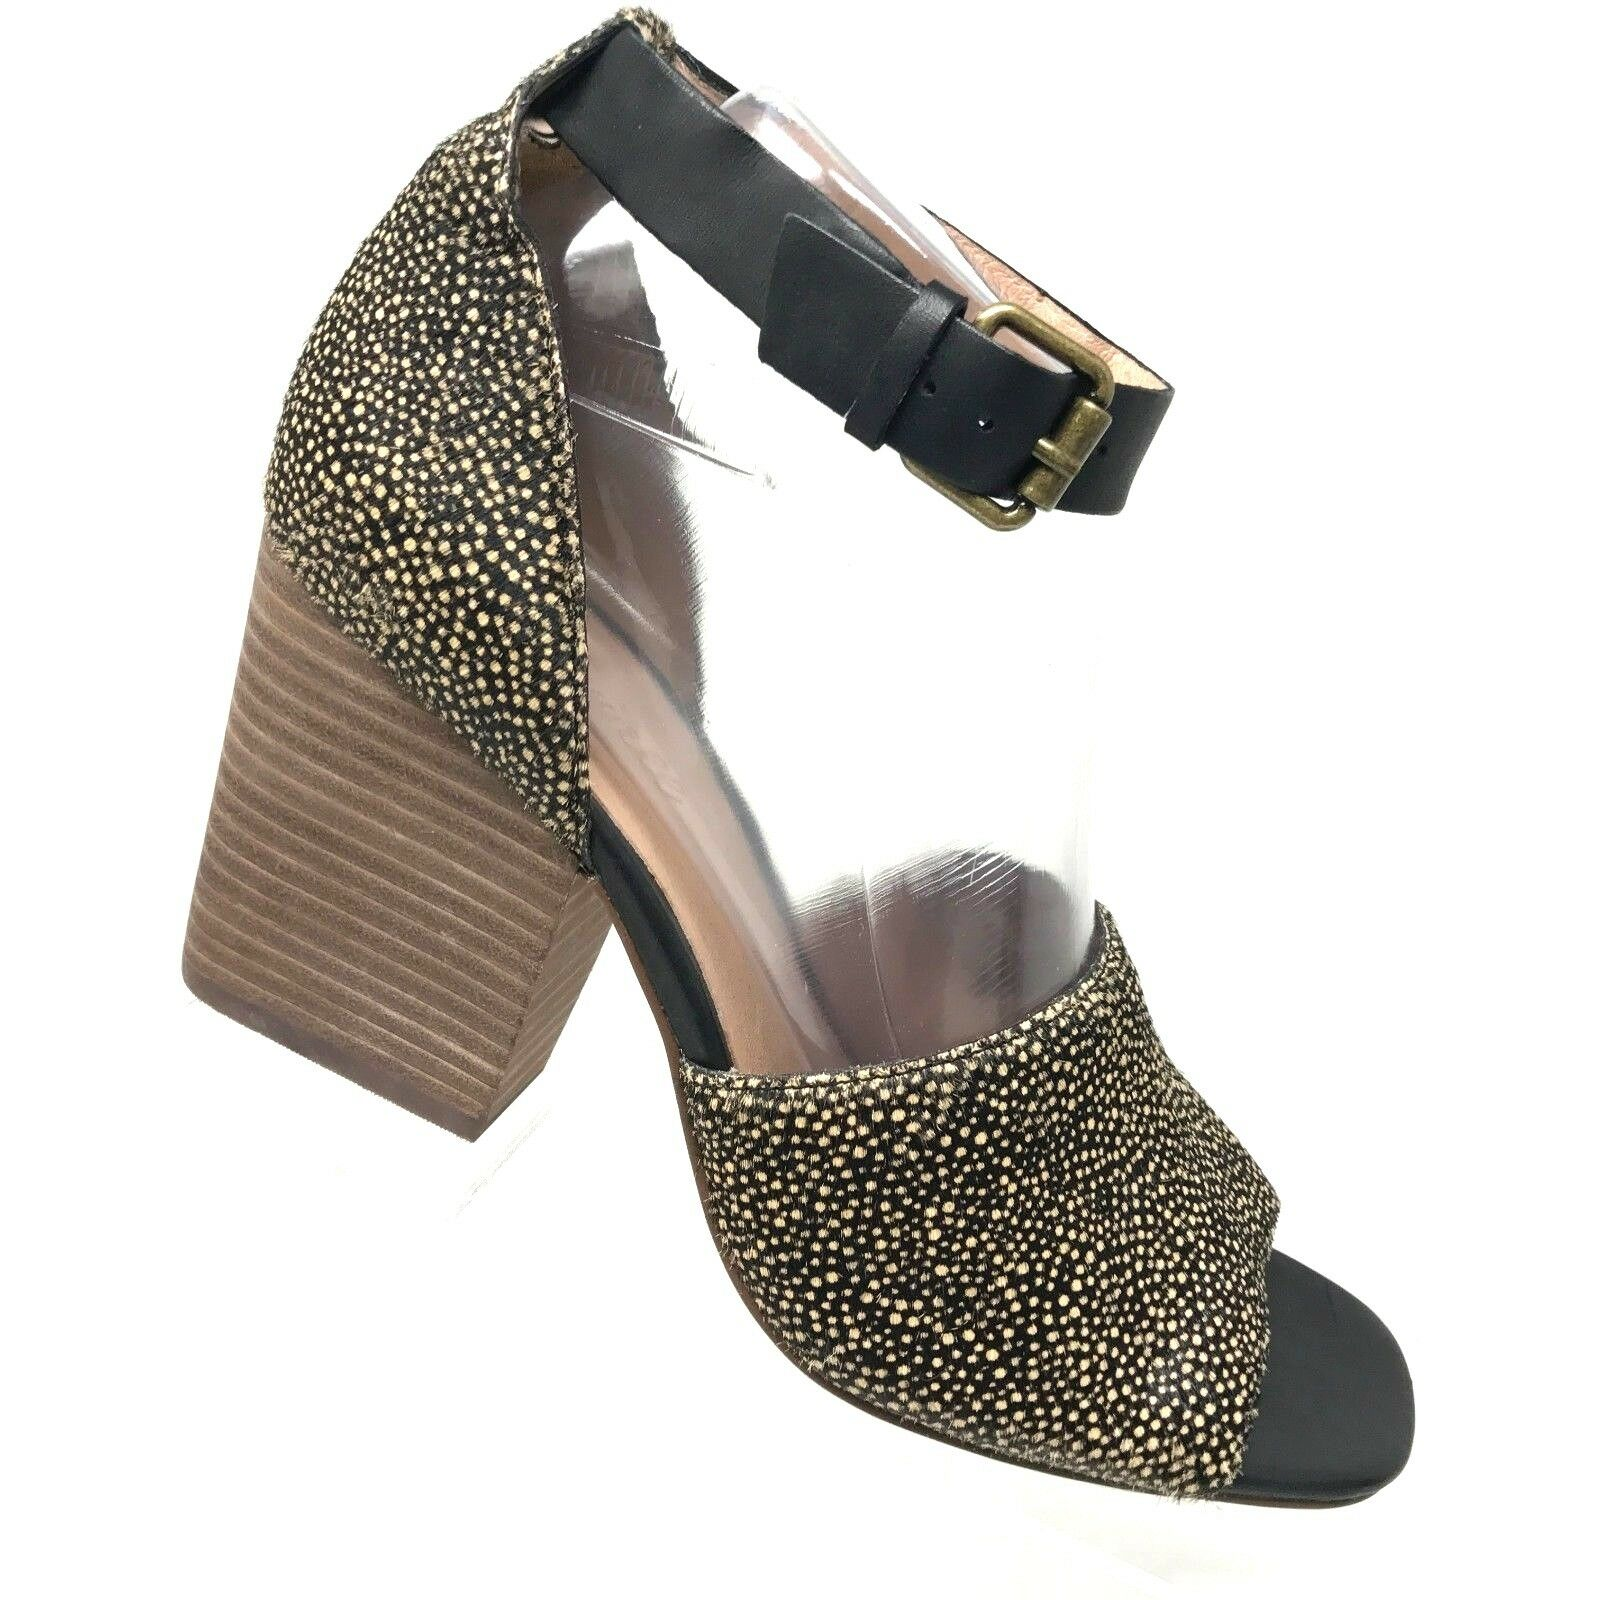 Madewell ALENA Sandale Spotted Calf Hair Stacked Heel Ankle Strap Damenschuhe SIZE 8